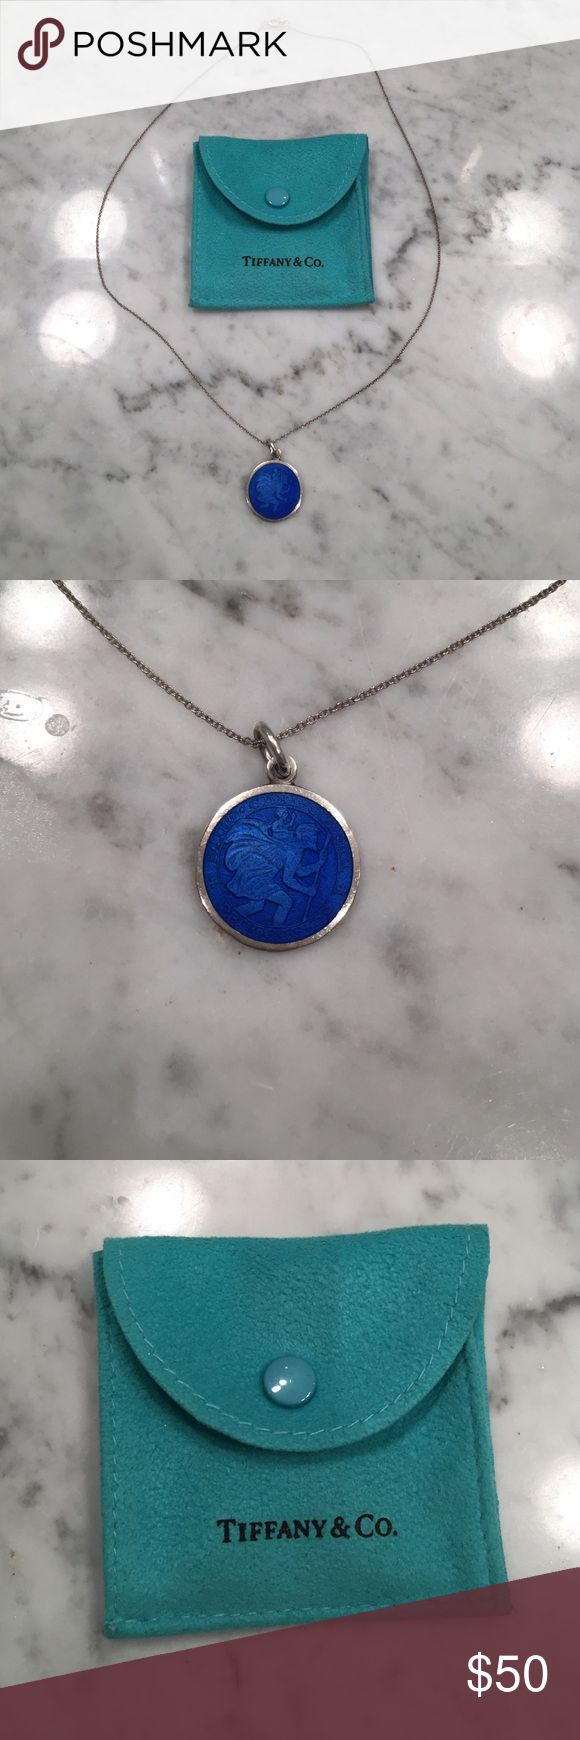 Tiffany & Co Sterling Silver St. Christopher Tiffany & Co Sterling Silver St. Christopher Necklace. Comes with jewelry bag and box. Guaranteed authentic. Tiffany & Co. Jewelry Necklaces